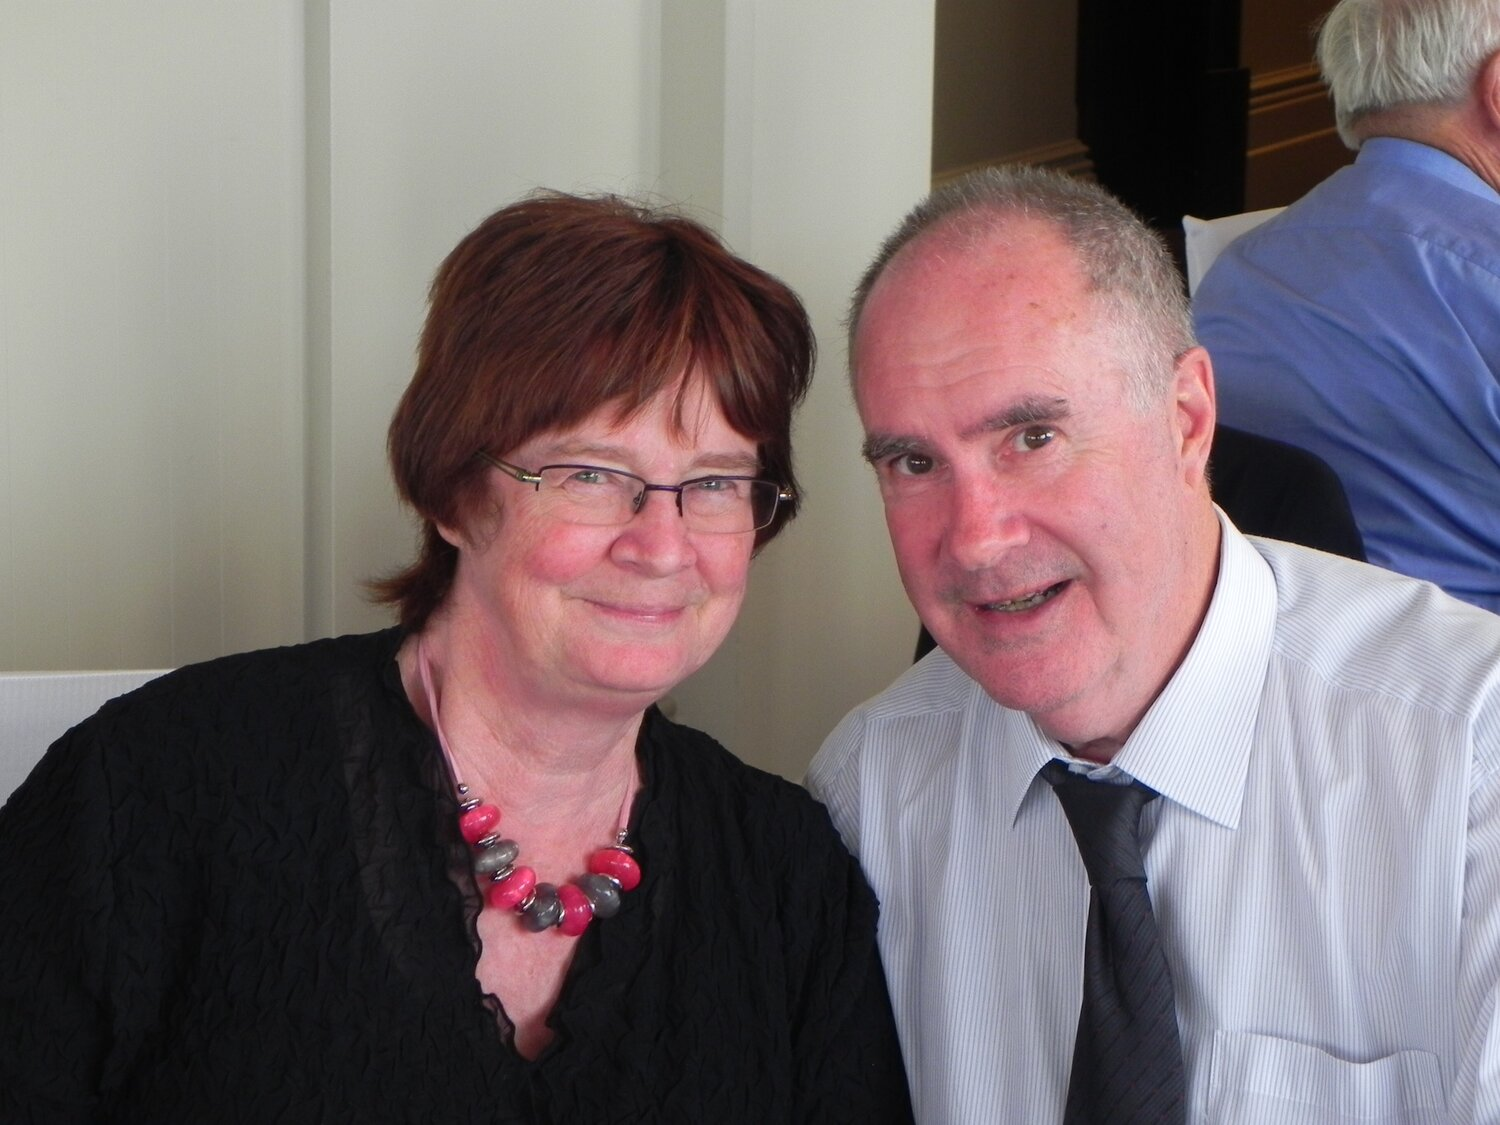 David Nd Helen Fitzgerald pic .JPG